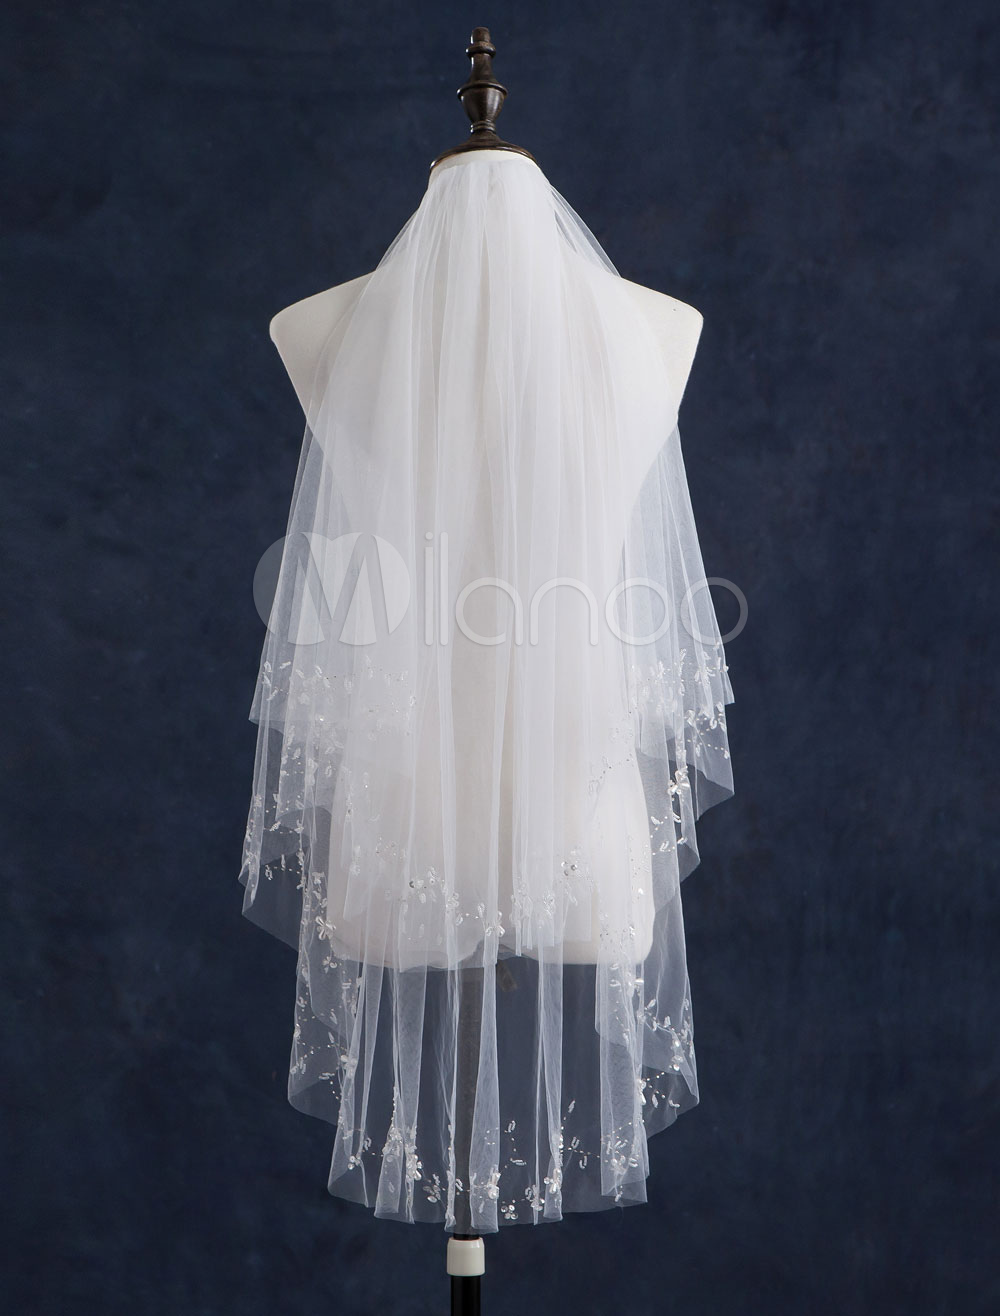 Fingertip Wedding Veils Two-Tiered Tulle Beaded Edge Classic Wedding Veils With Comb(140*85cm)